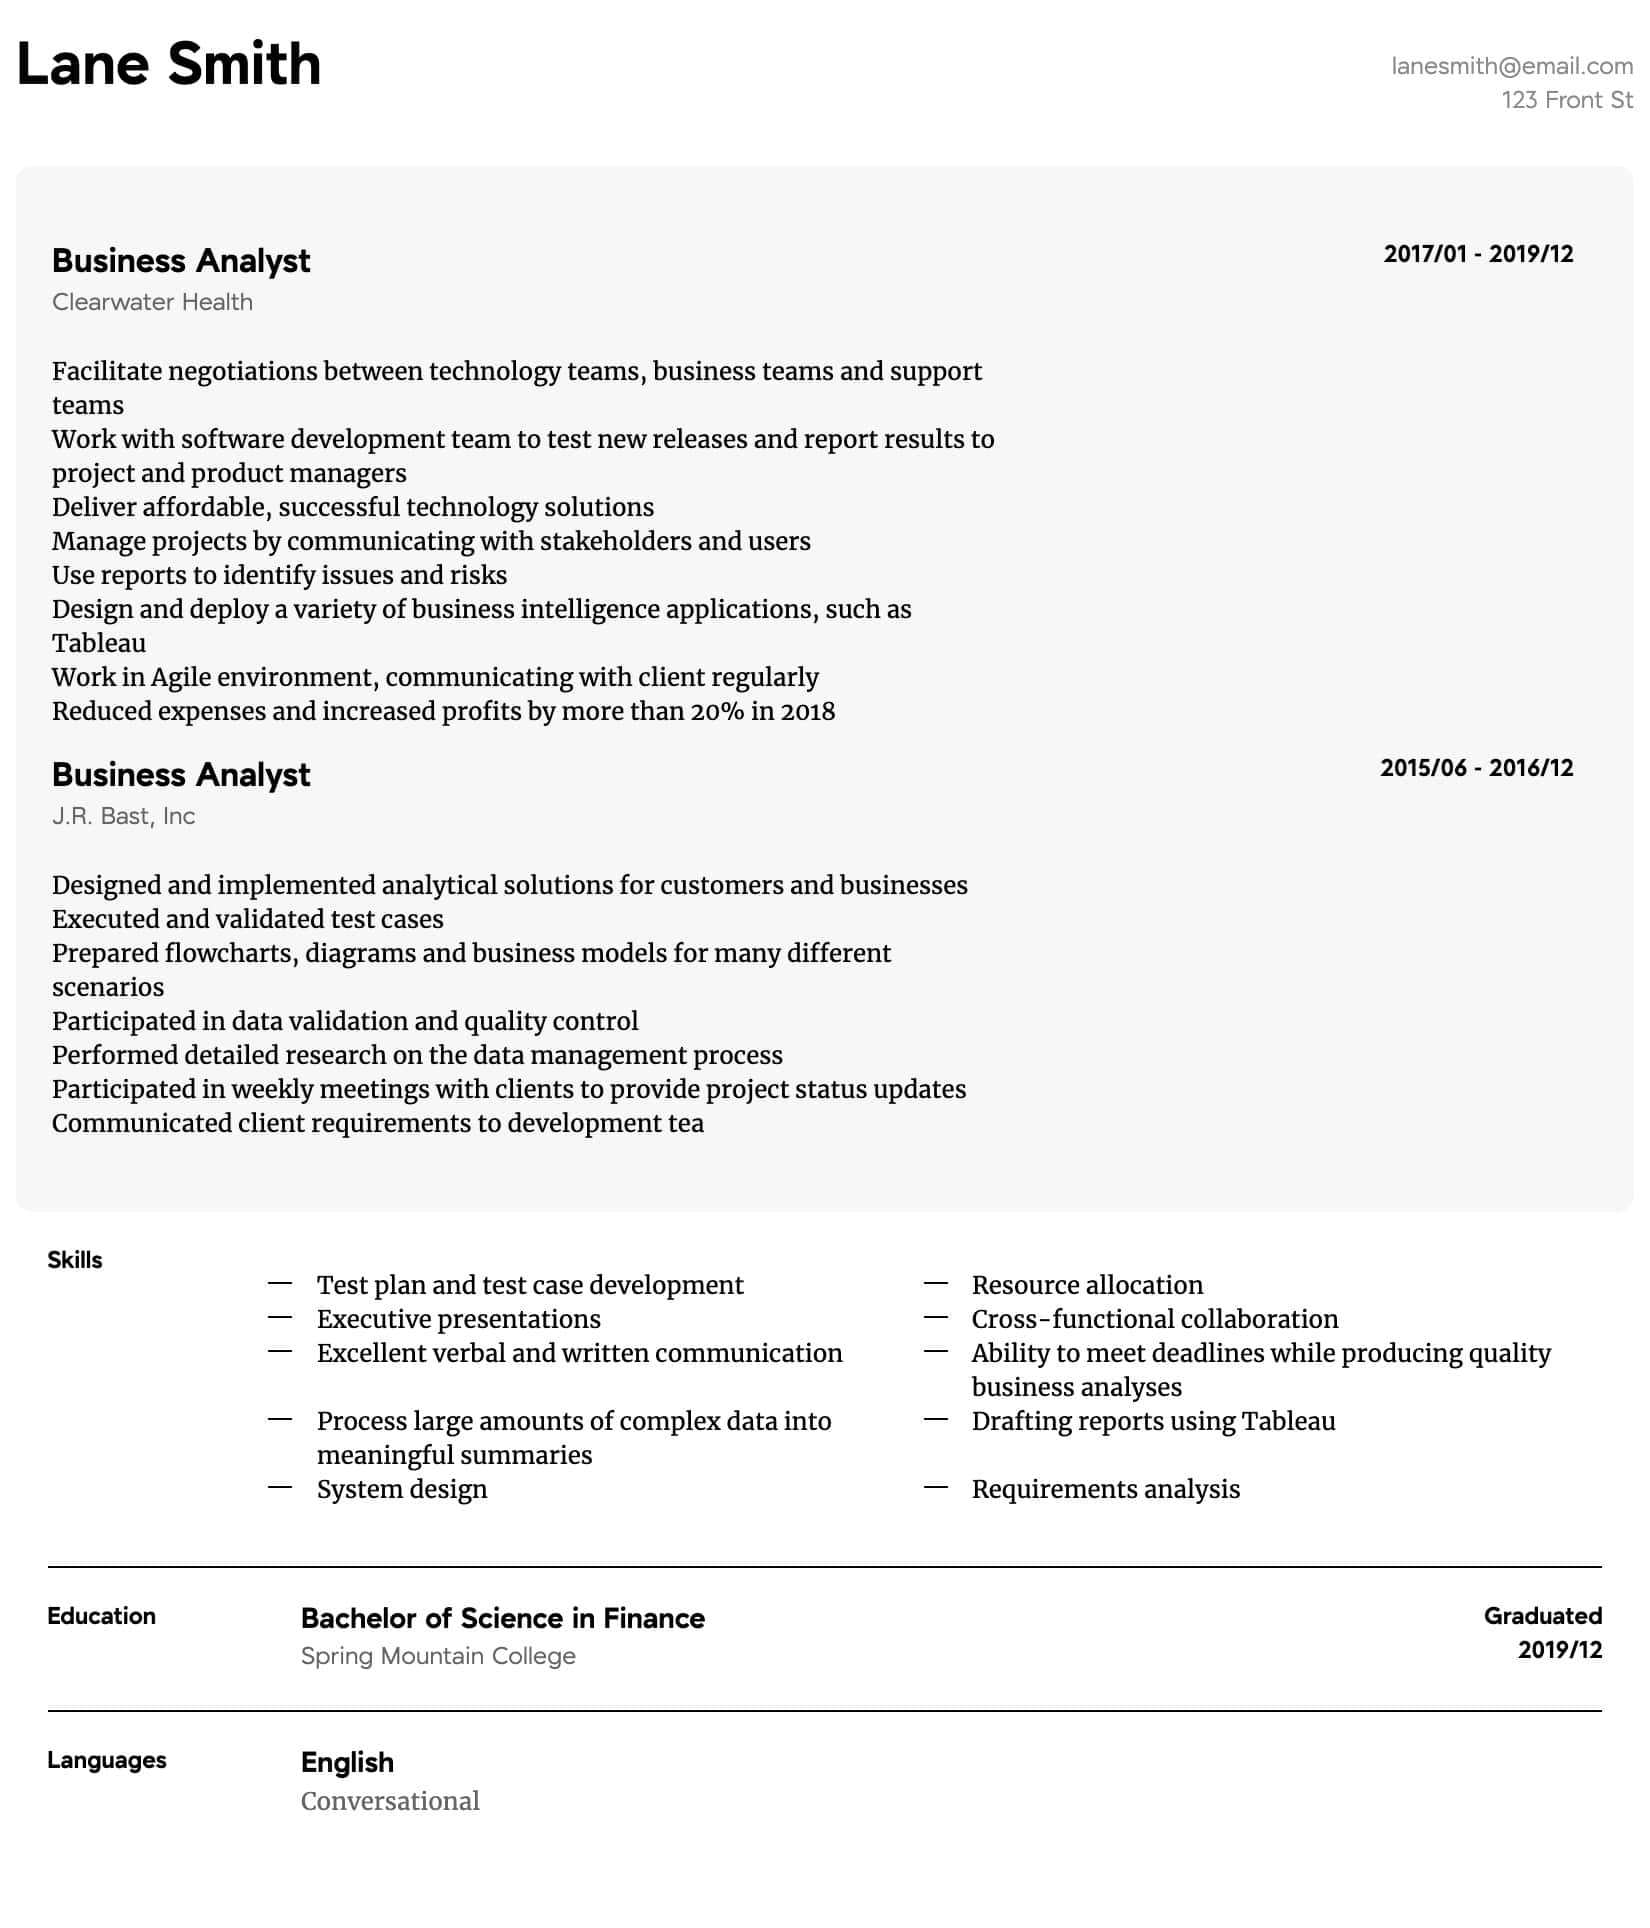 business analyst resume samples all experience levels entry level intermediate calgary Resume Entry Level Business Analyst Resume